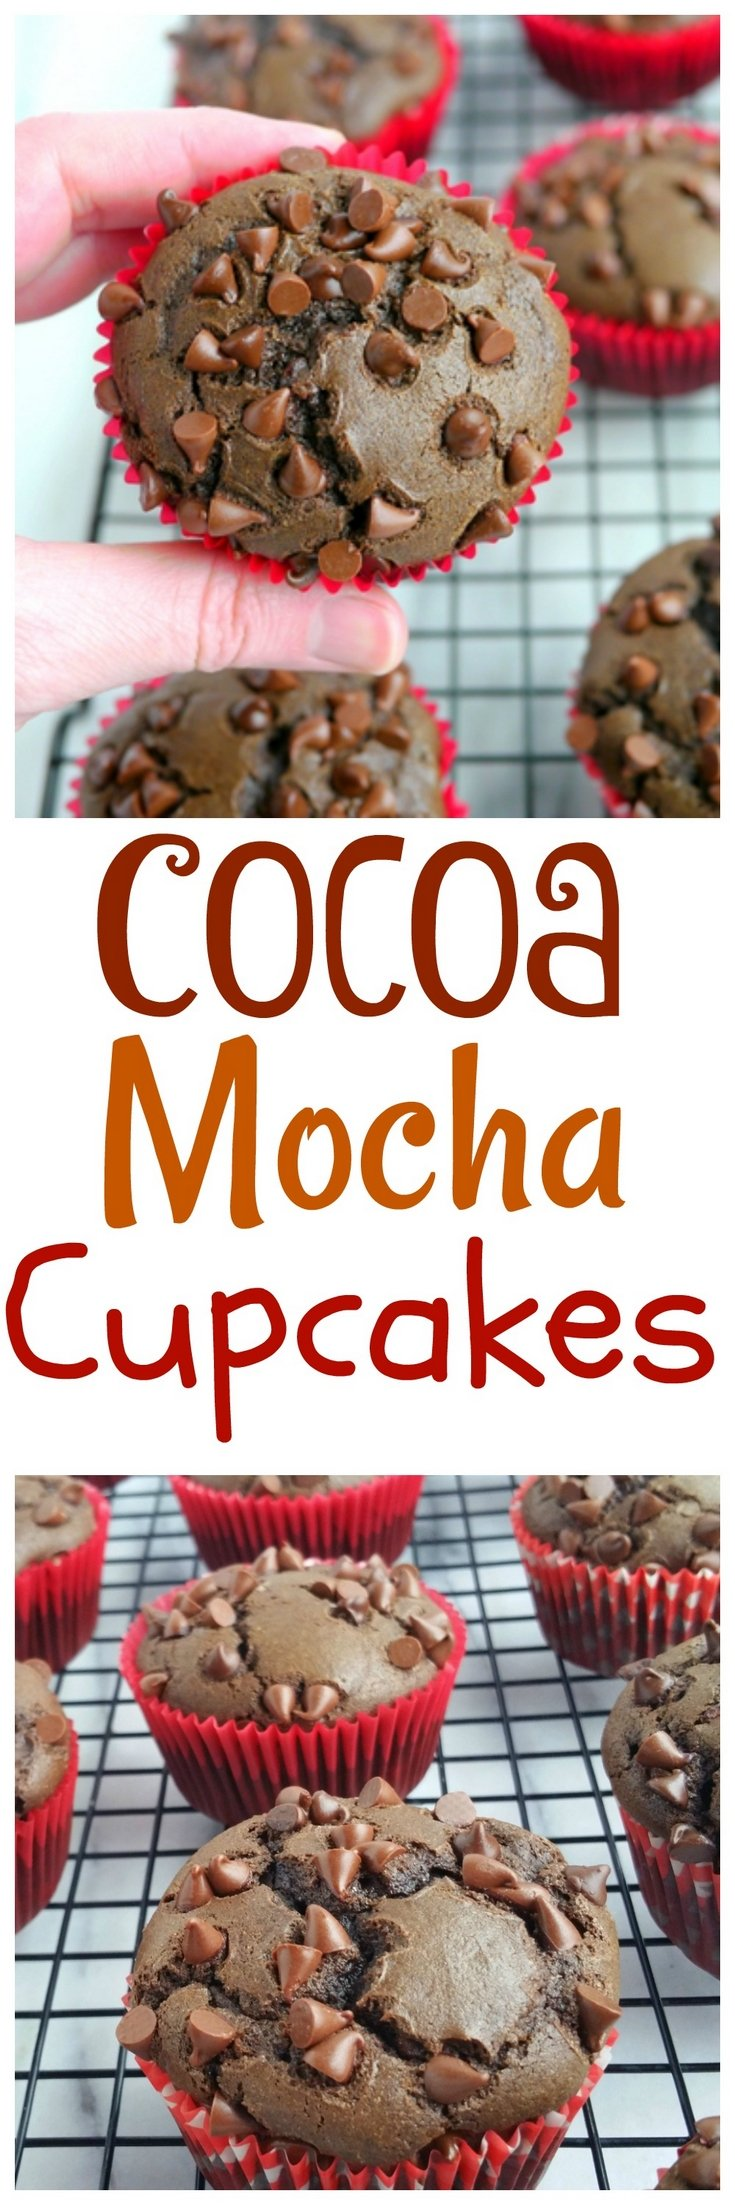 These Cocoa Mocha Cupcakes have a grown-up edge. No one will miss the frosting on this deliciously rich tasting dessert, from NoblePig.com. via @cmpollak1